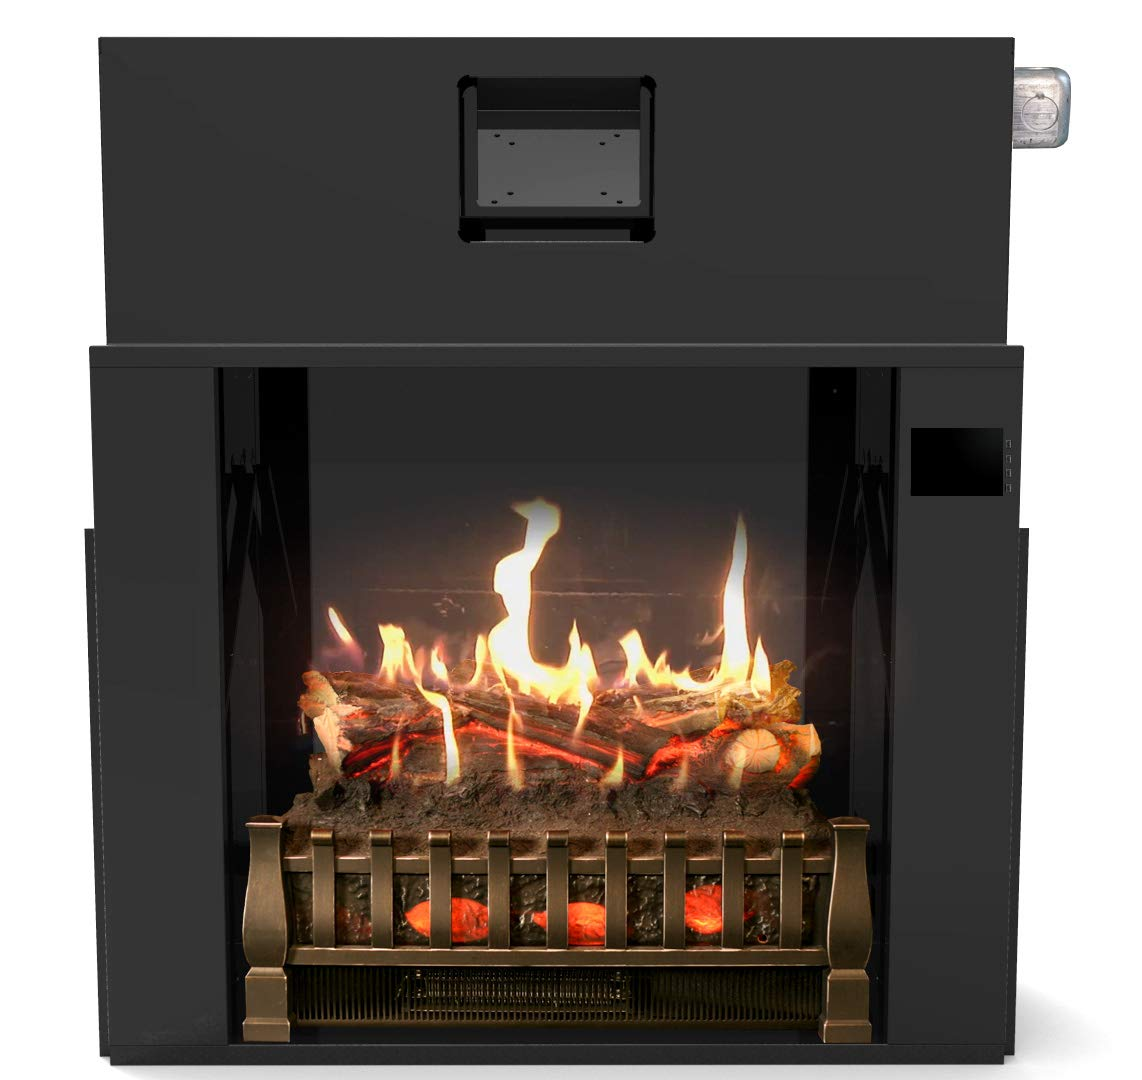 MagikFlame Most Realistic Electric Fireplaces – Premium Firebox Insert – 28 w x 31 t x 12 d – Includes 4,600 BTU Log Set Heater, Crackling Sound, App – Ideal for Family Atmosphere, Ambiance